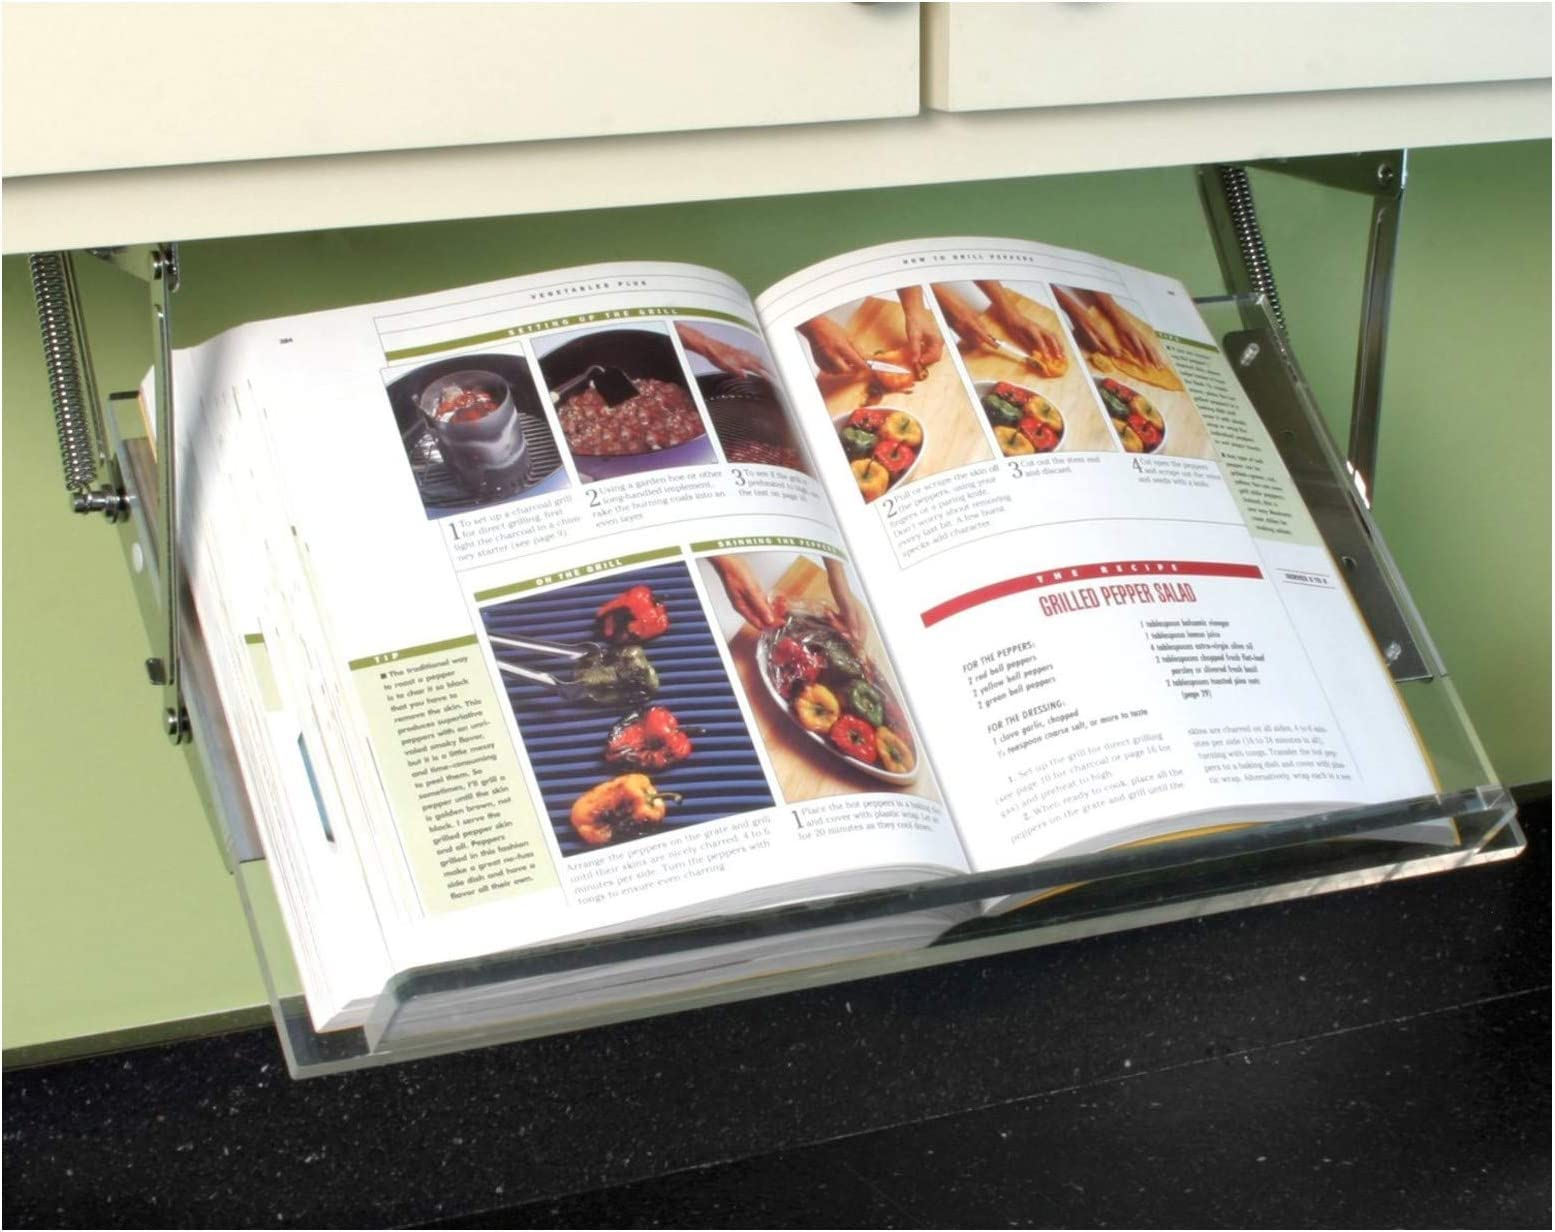 Clear Solutions Under Cabinet Mounted Cookbook Holder - Acrylic - Made in The USA